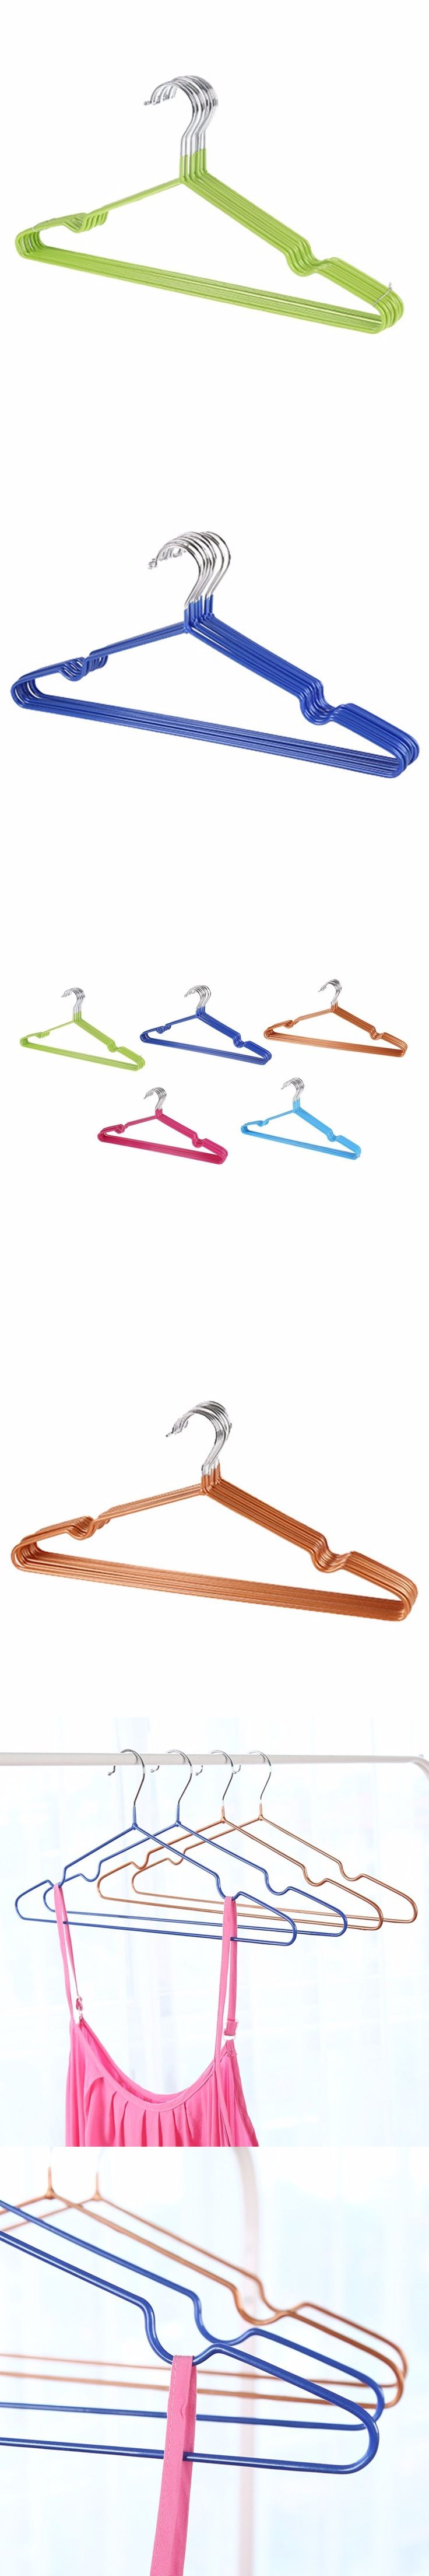 10pcs/Lot Strong Stainless Steel Hangers For Clothes Pegs Wire Anti-skid Drying Clothes Rack Adult And Children Hanger Newest